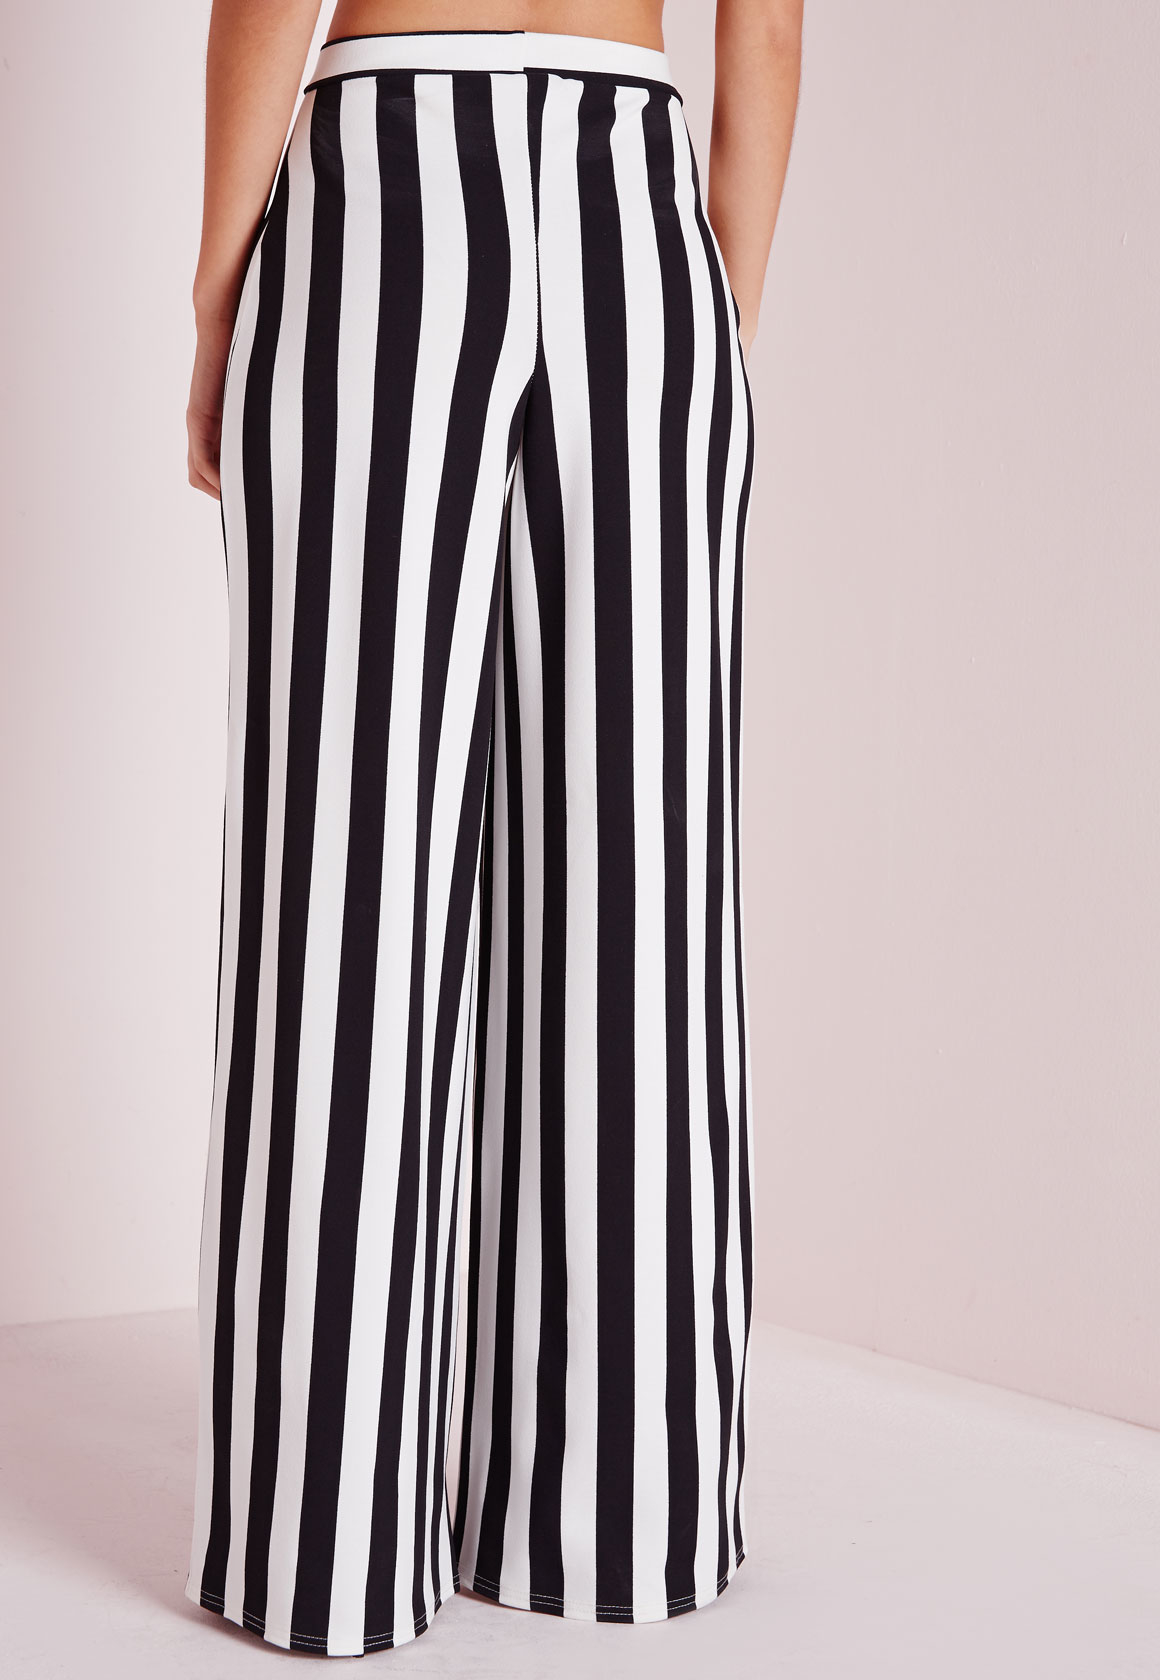 wide leg pants black and white reviews: black top and pants wide legs with black printed wide leg trousers black and white jumpsuit wide legs green wide leg pants for women wide leg white velvet pants wide pants stripes black and white. Related Categories Women's Clothing & Accessories. Pants .